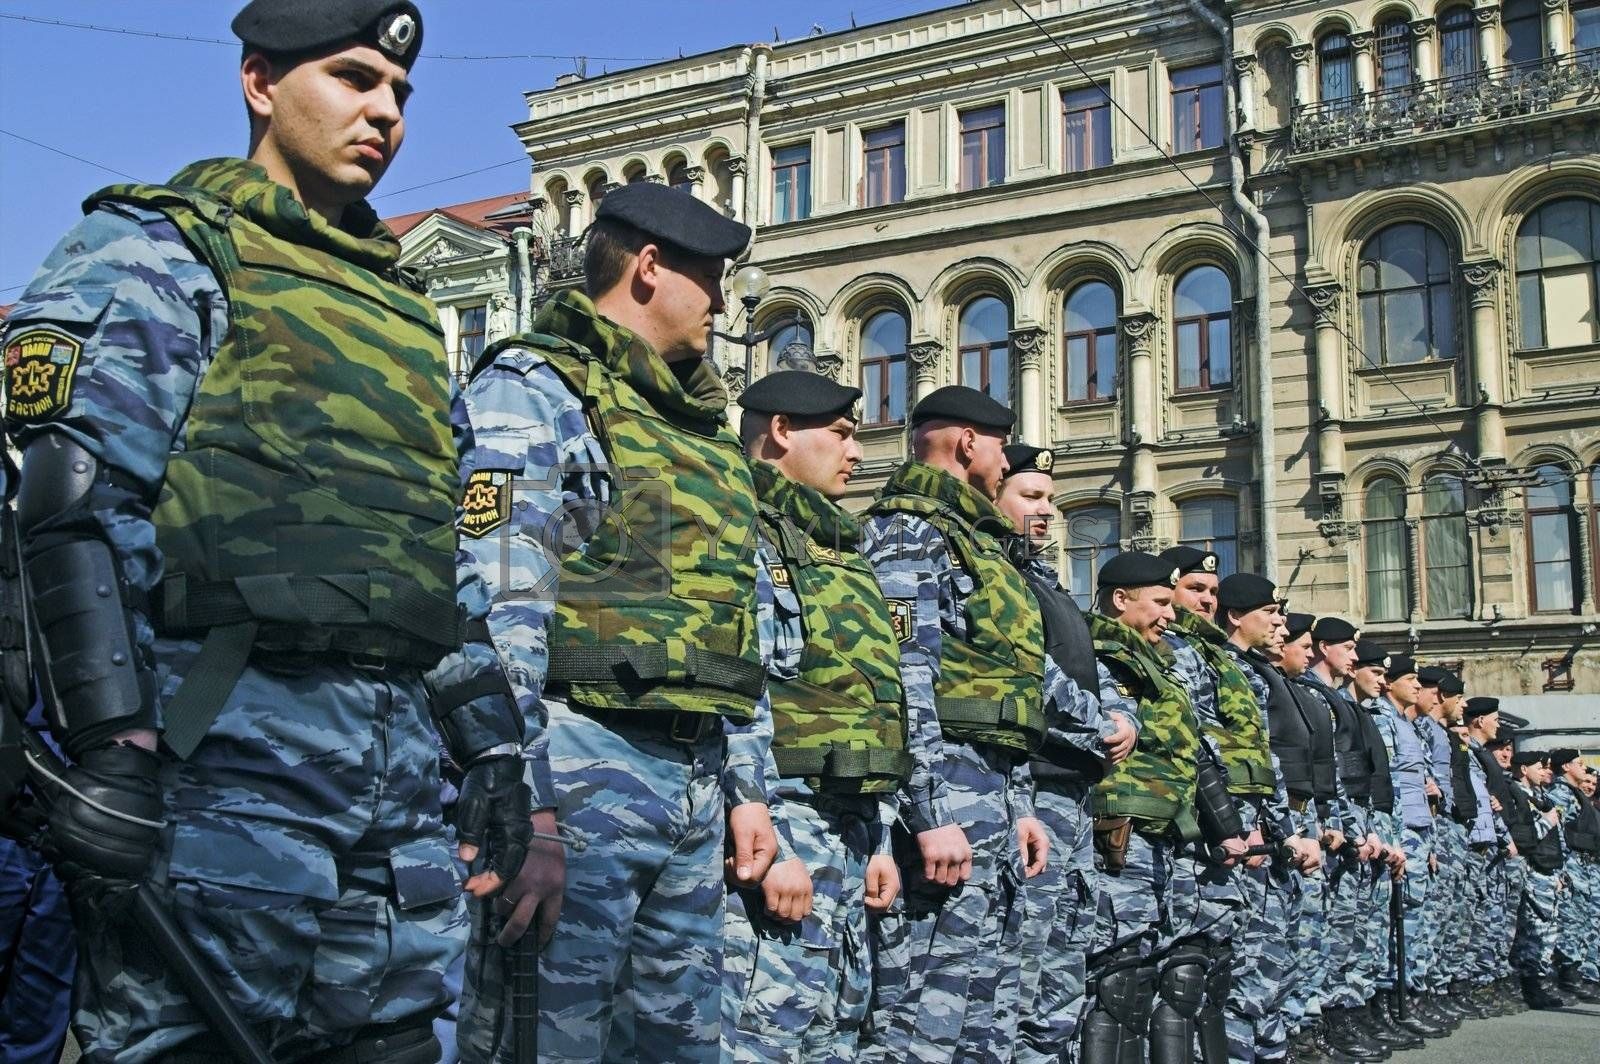 ST PETERSBURG - MAY 1: Police officers lined to keep order during opposition protest rallies May 1, 2008, in St Petersburg, Russia.